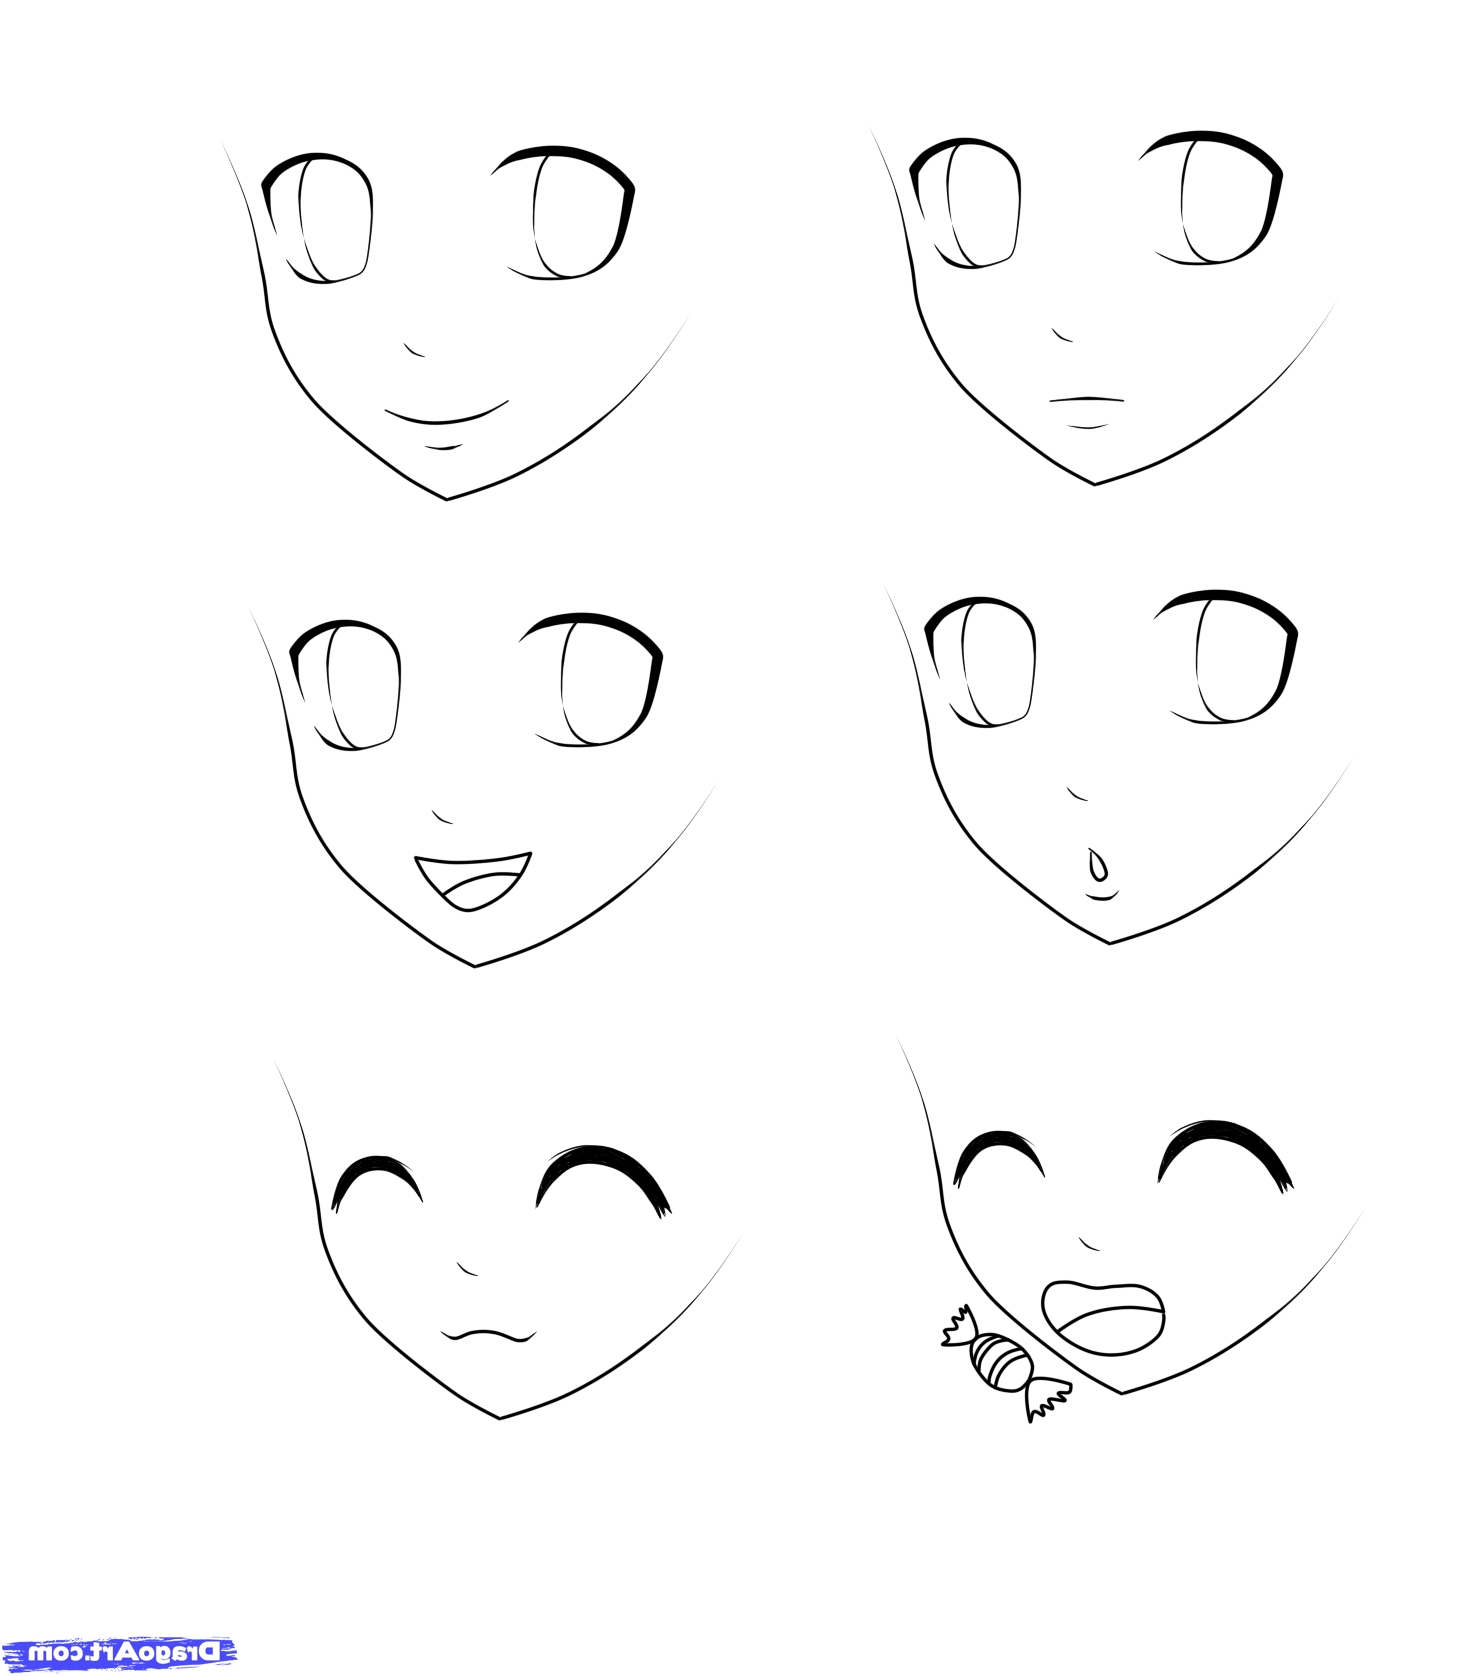 anime step by step drawings how to draw anime face skip to my lou anime by drawings step step